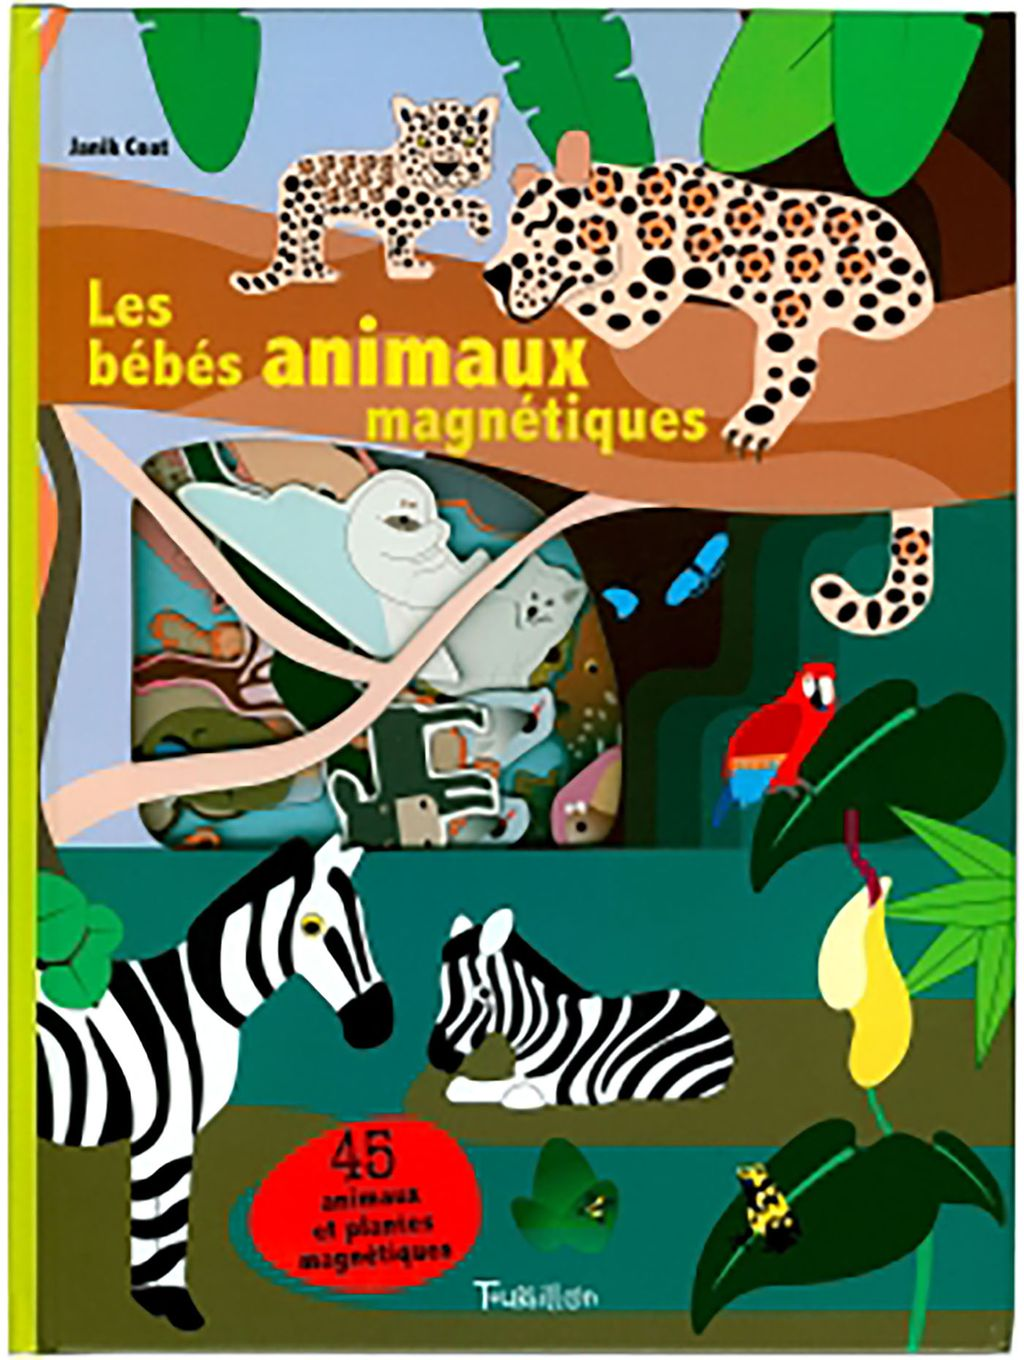 « LES BEBES ANIMAUX MAGNETIQUES » cover